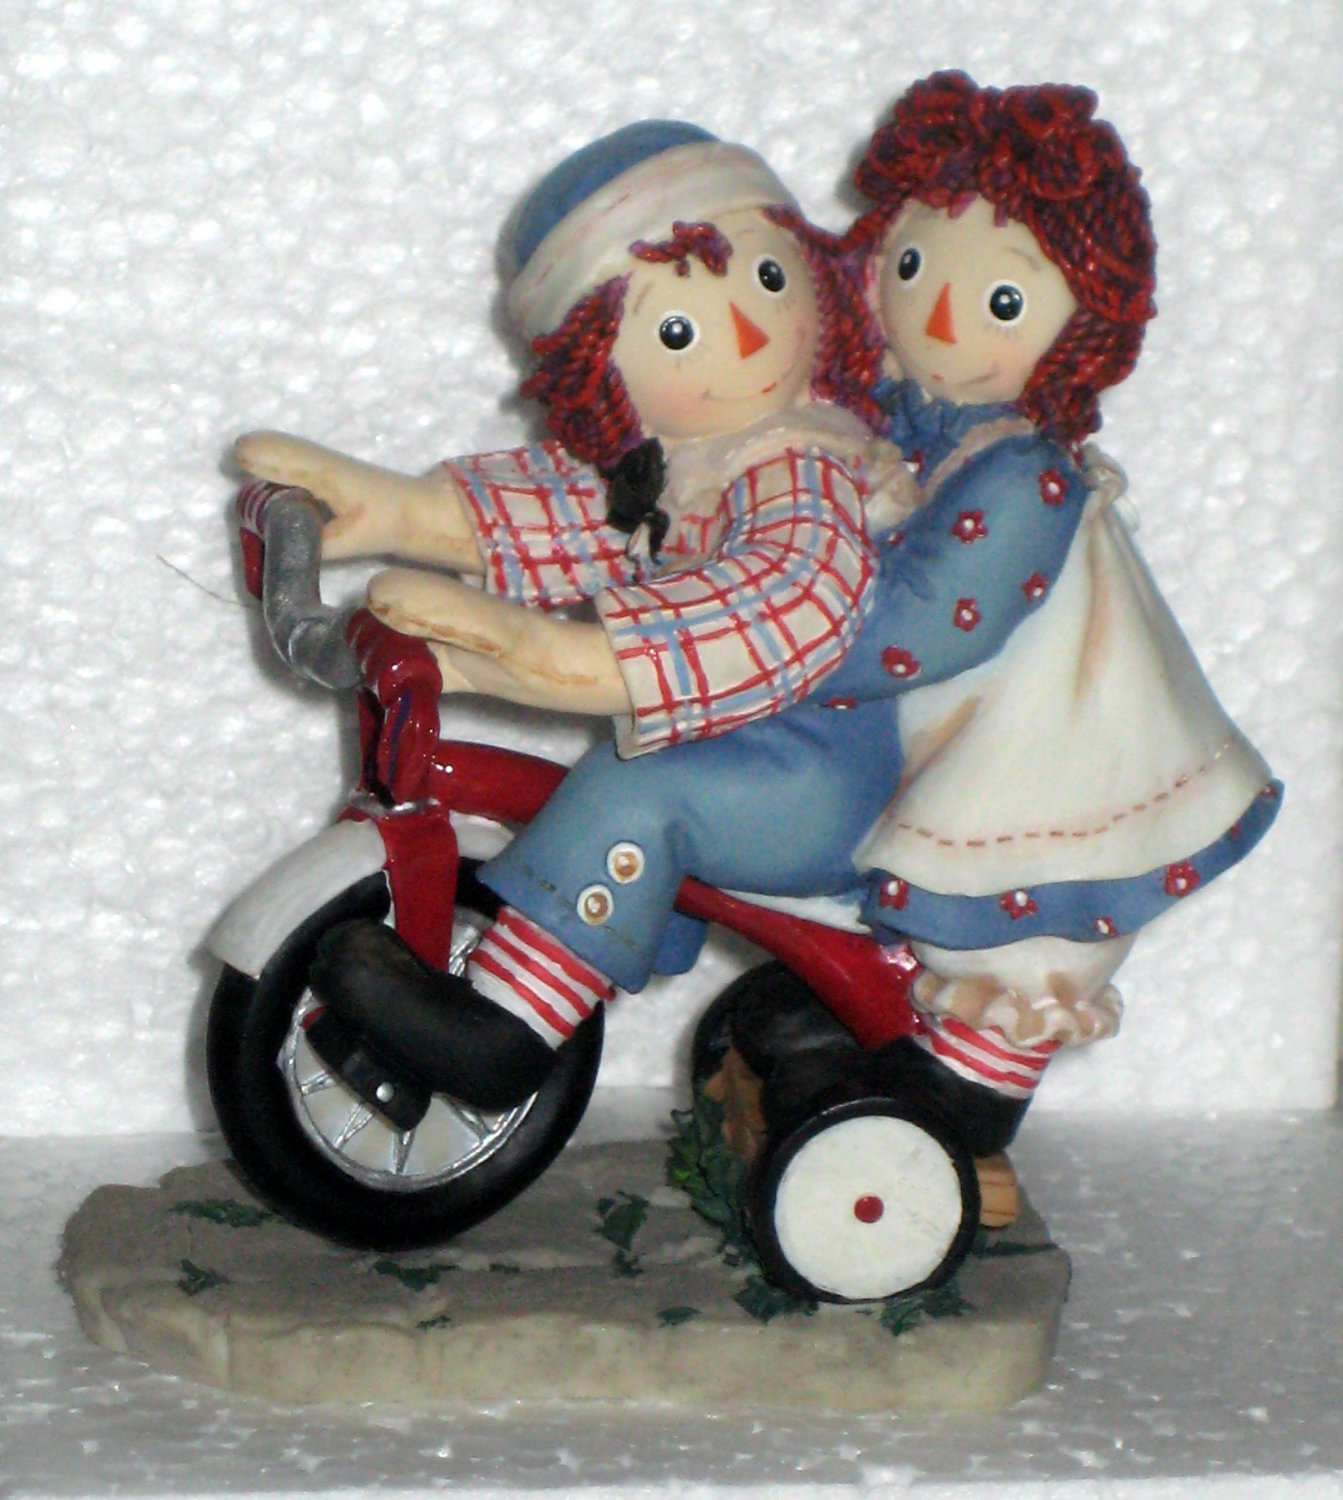 677752 Happiness is Sharing a Cheery Smile Raggedy Ann & Andy Enesco Figurine Tricycle NIB